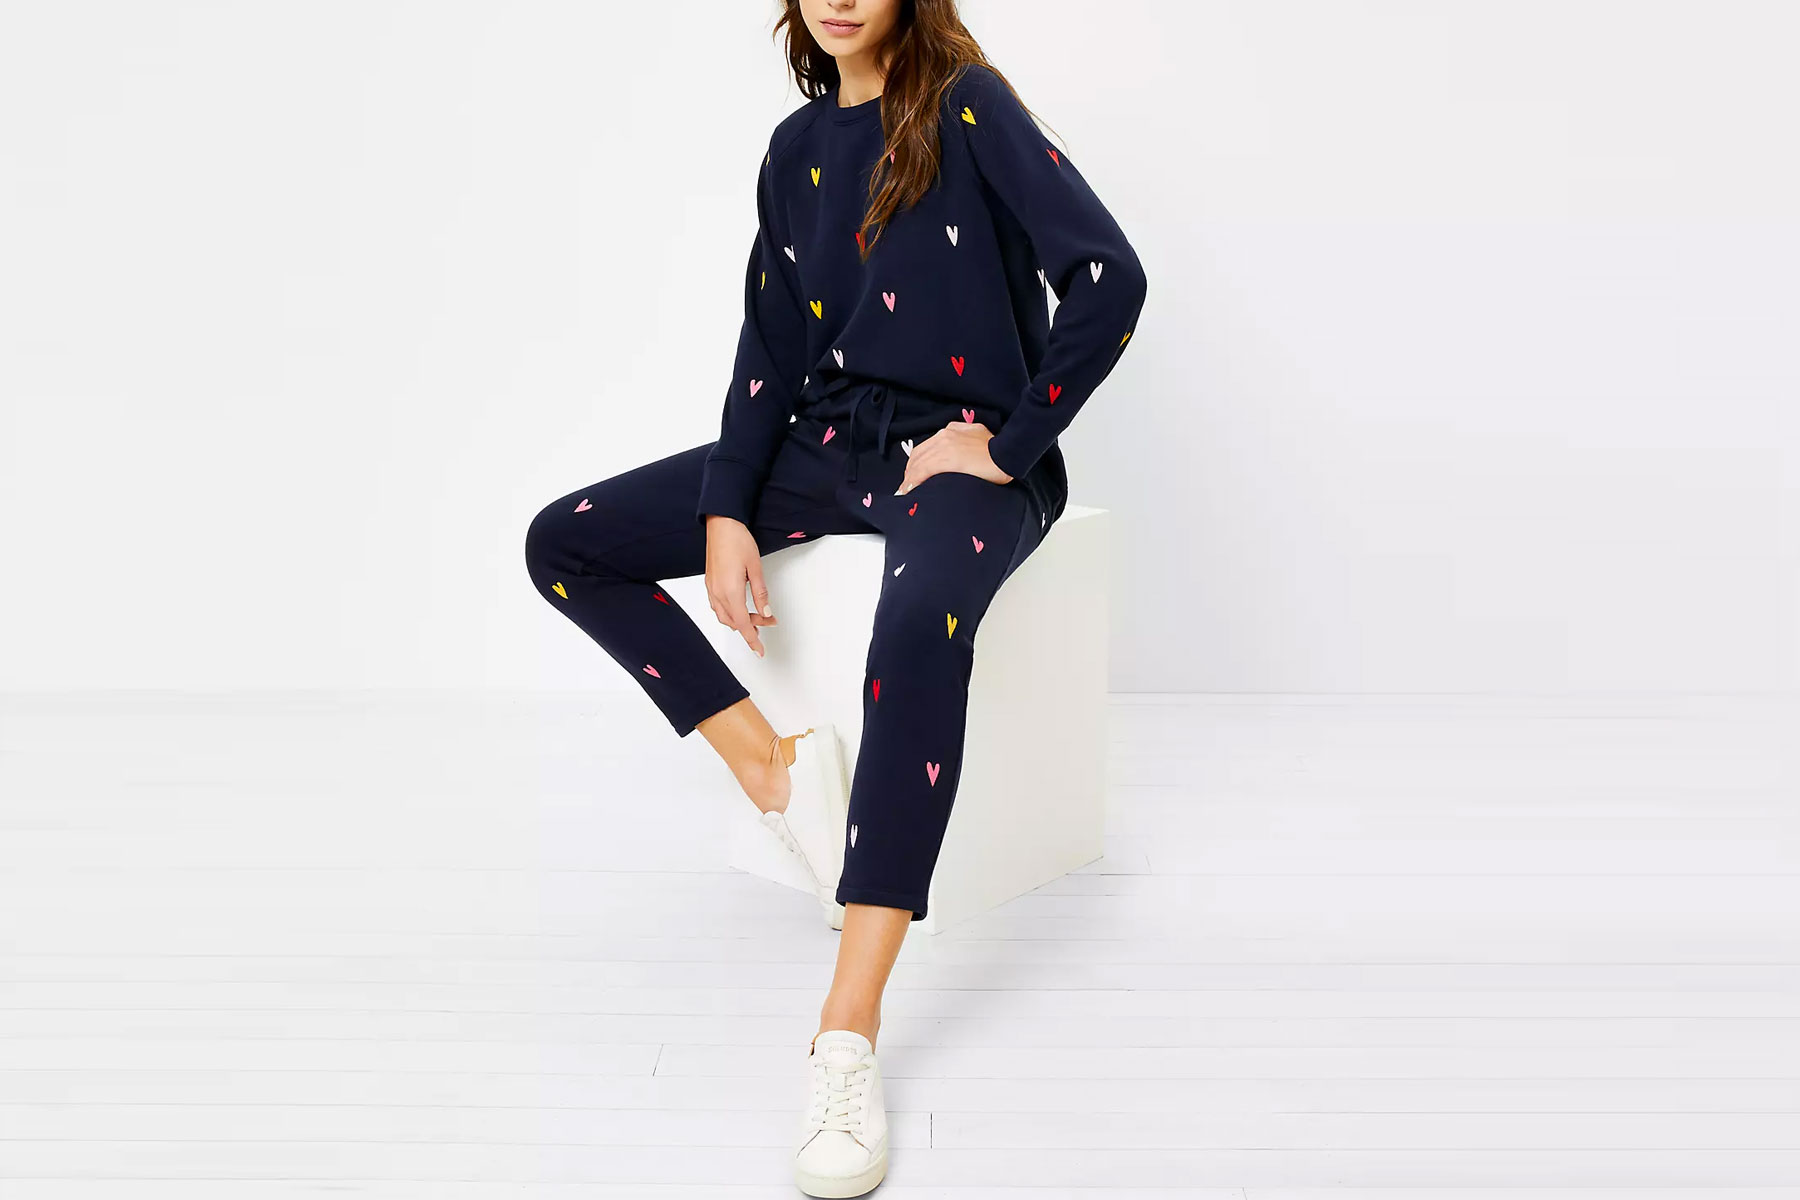 Woman wearing navy sweatsuit with multi colored hearts